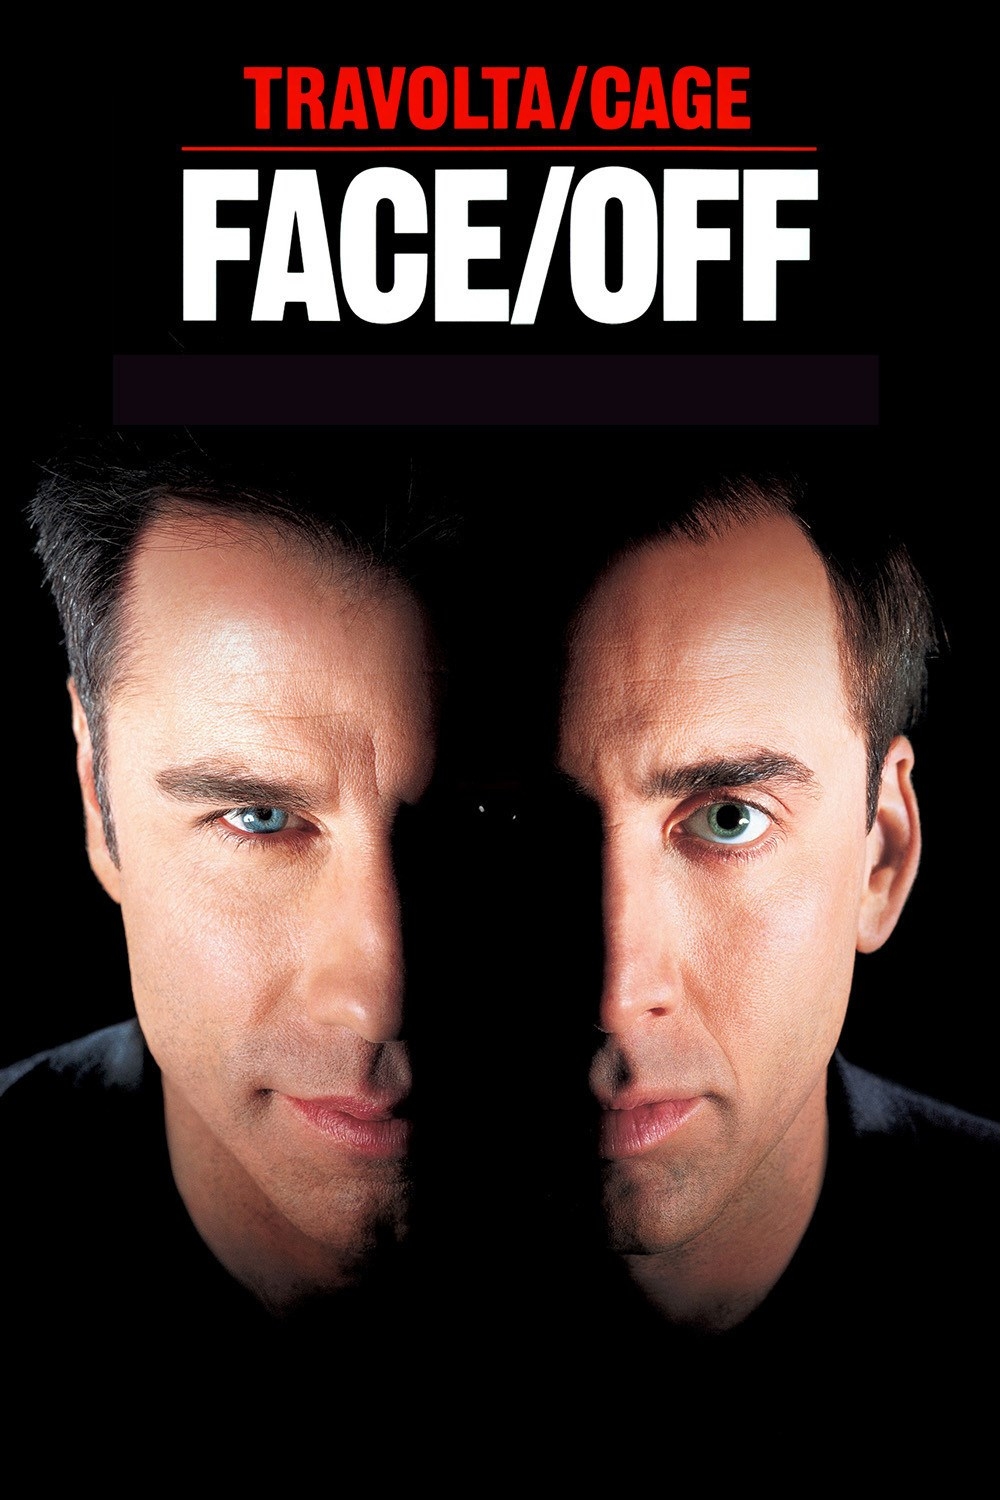 https://i.jeded.com/i/faceoff-face-off.457.jpg